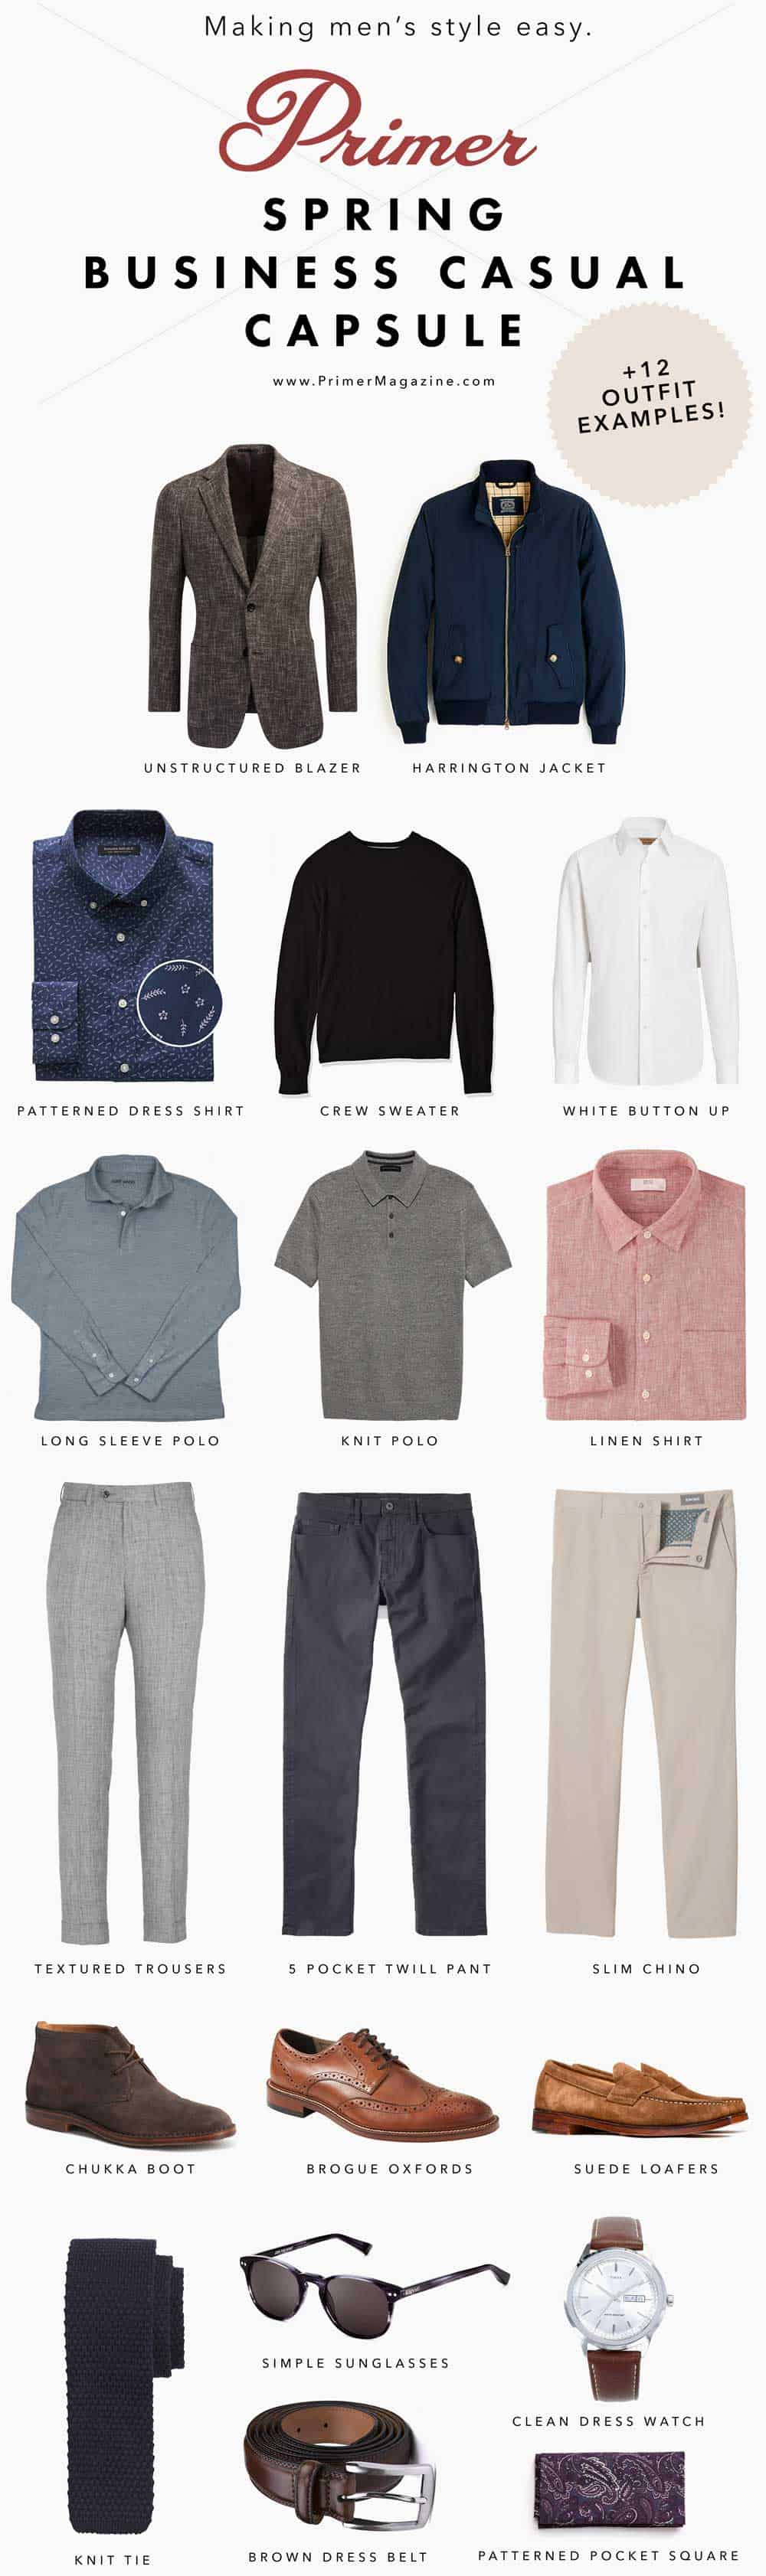 men business casual fashion spring capsule